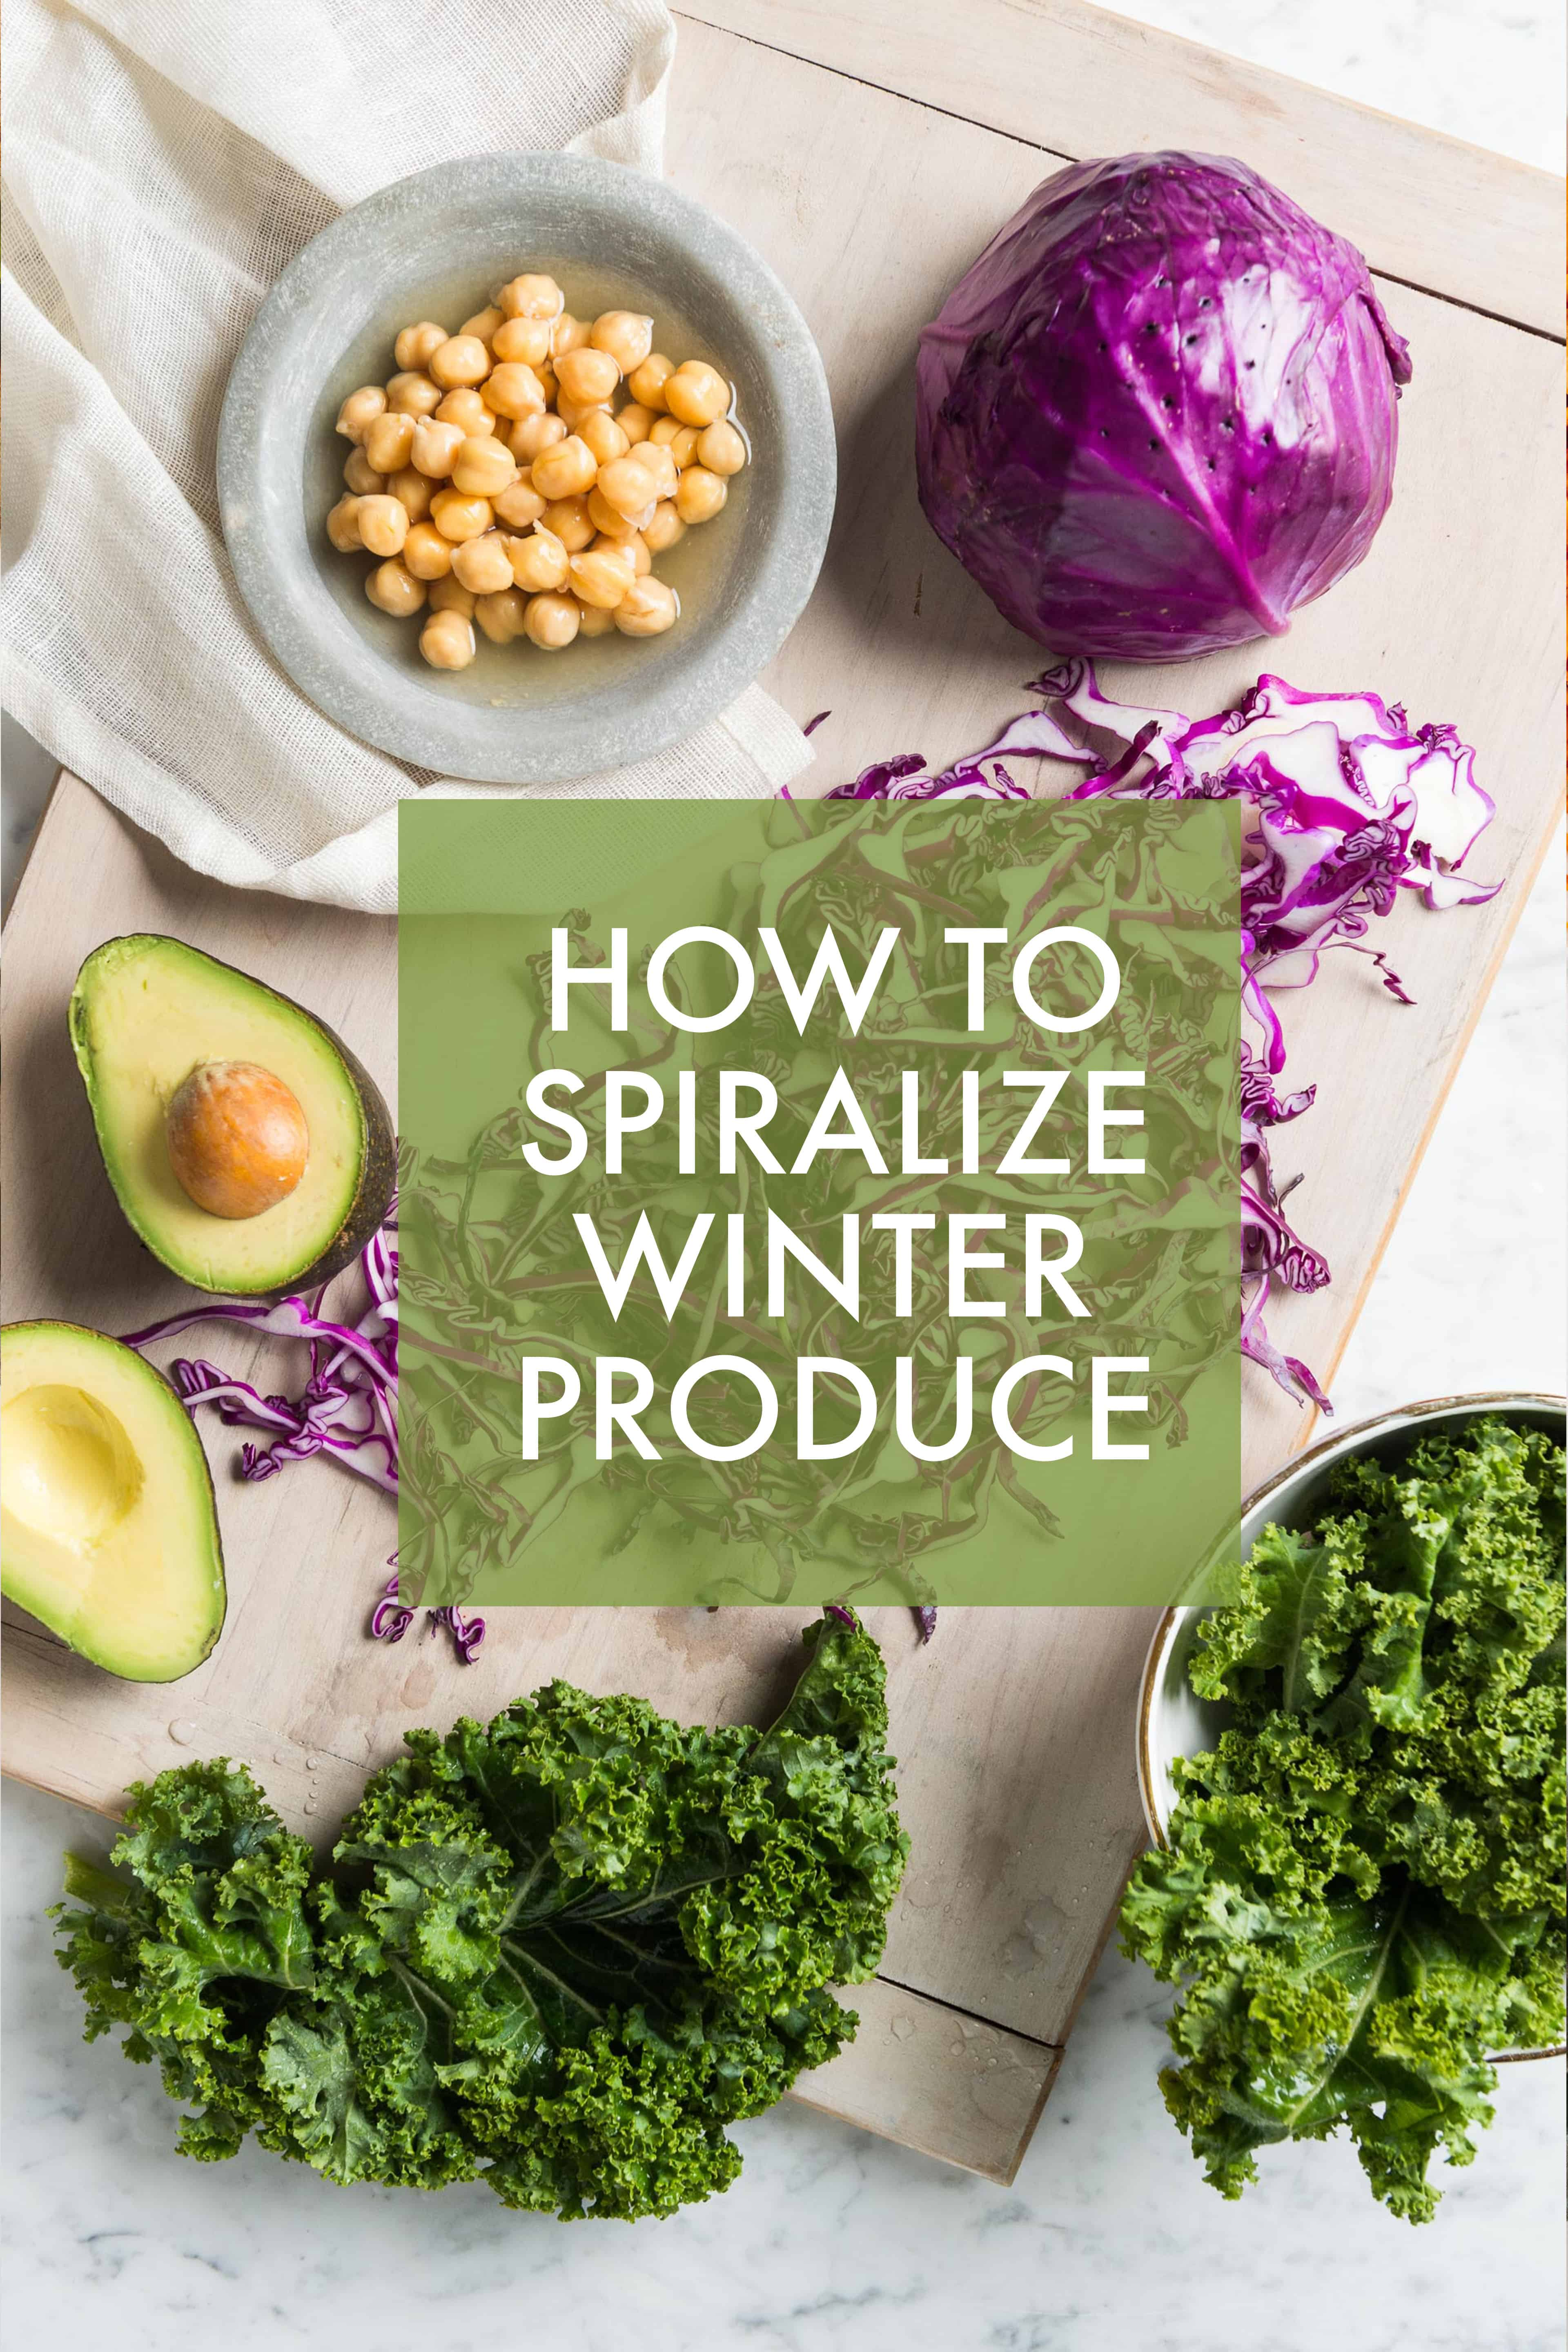 How to Spiralize Winter Produce